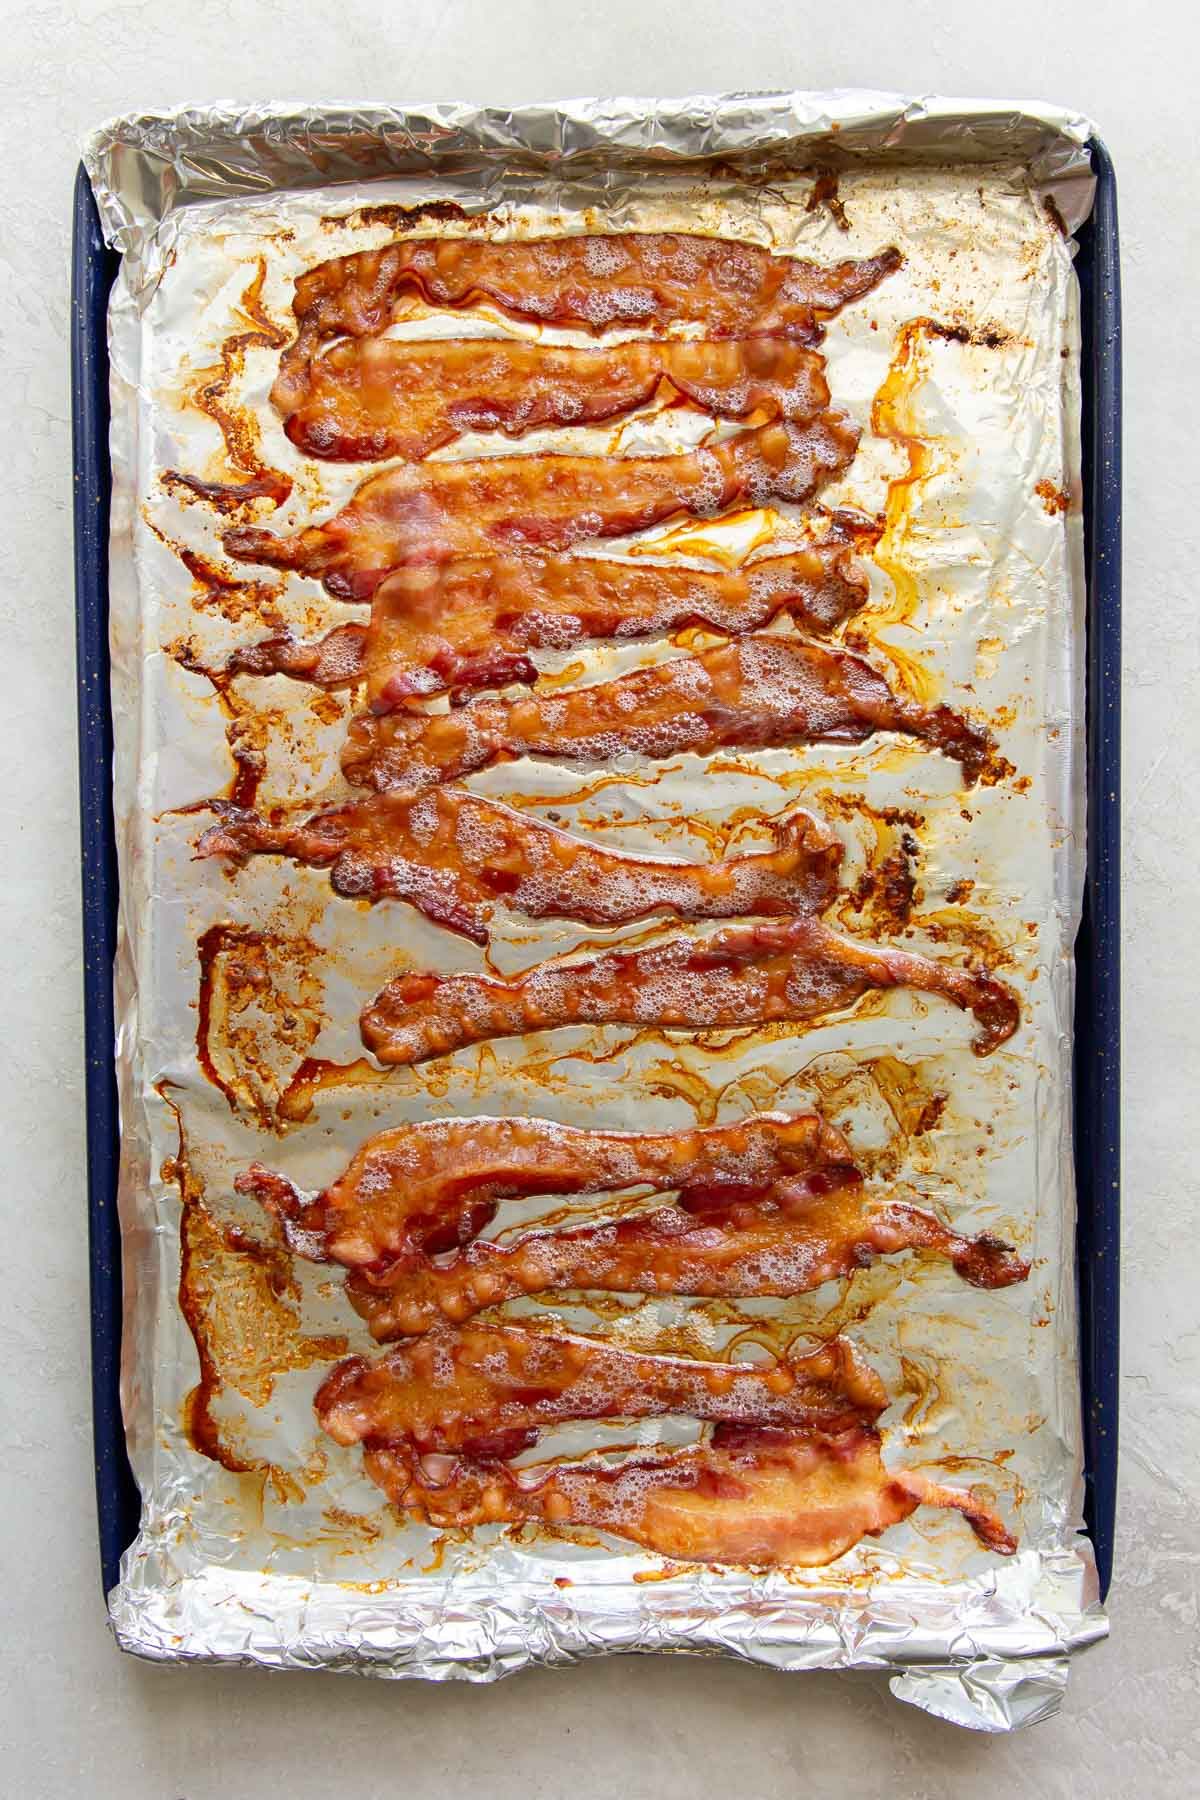 baked bacon slices on a foil-lined rimmed baking sheet